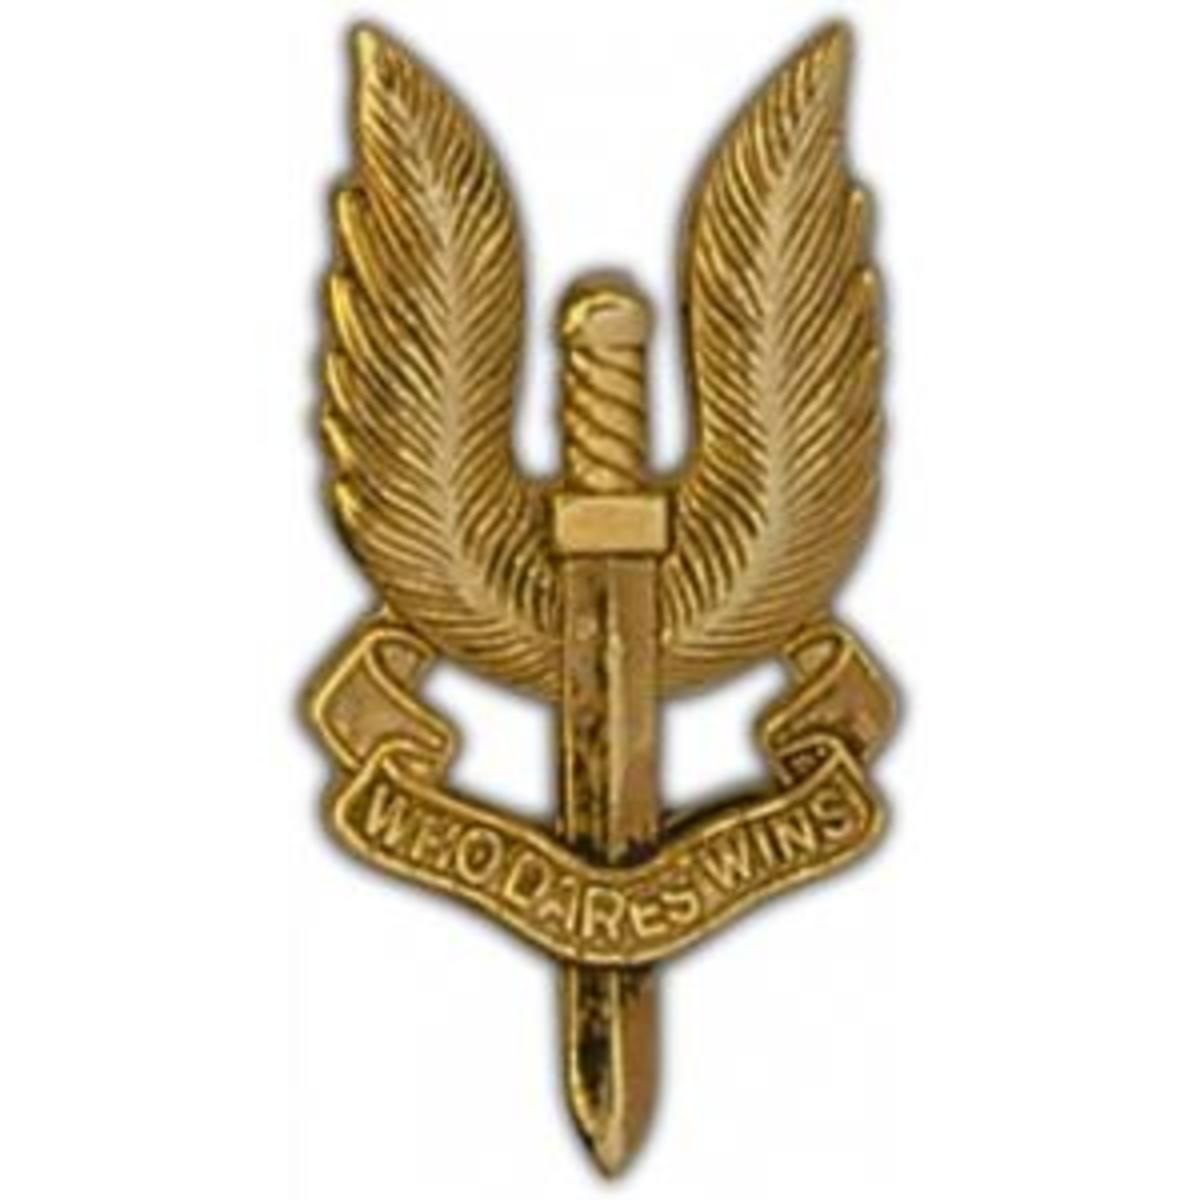 The SAS Logo/Motto - Who Dares Wins